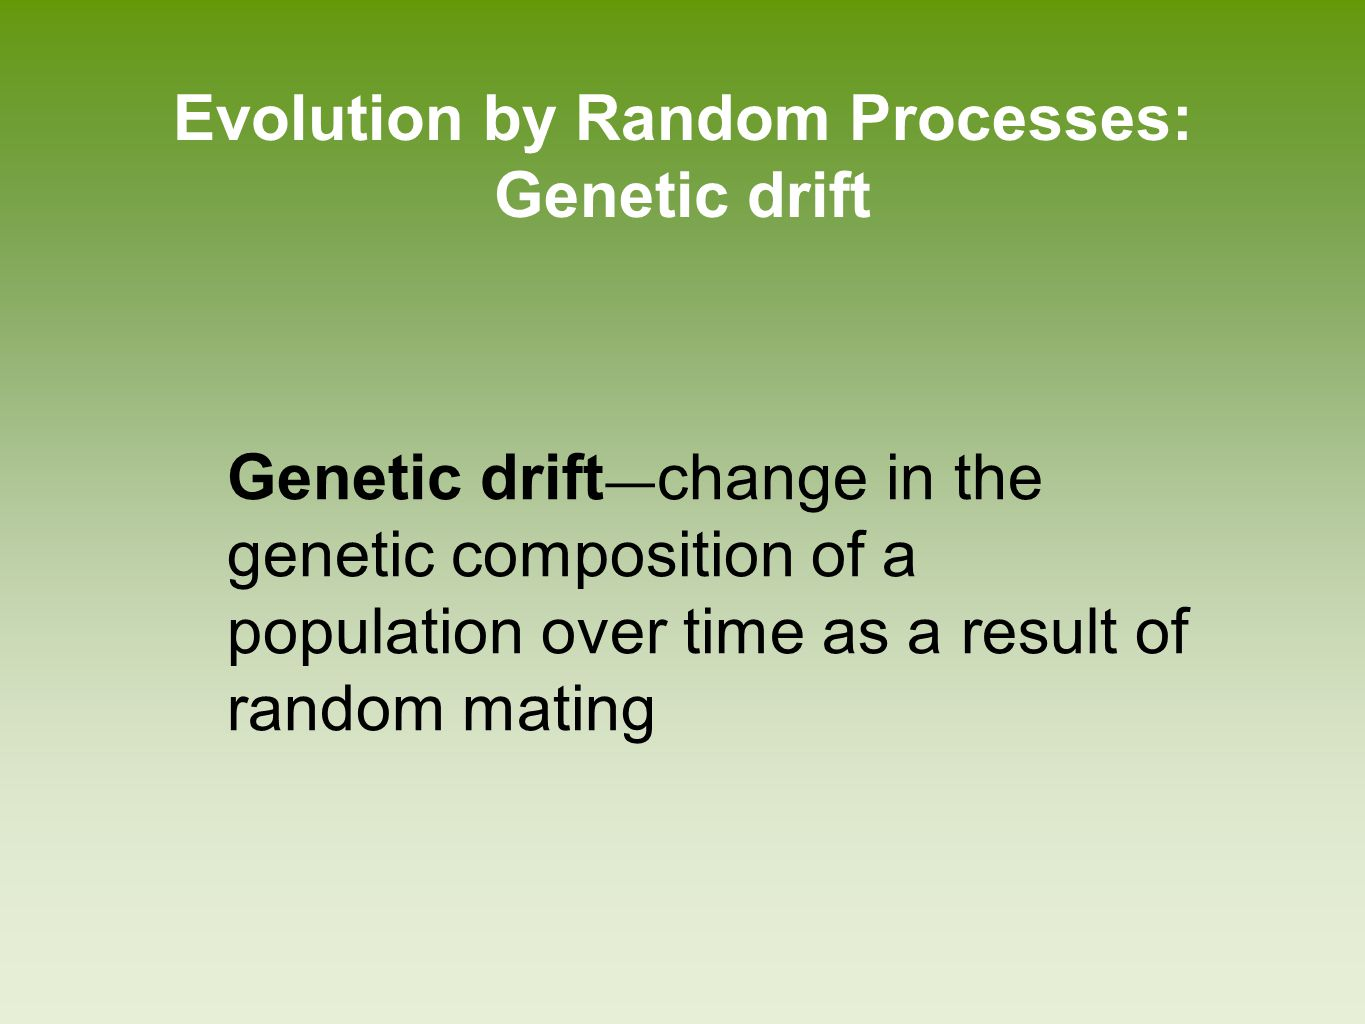 Evolution by Random Processes: Genetic drift